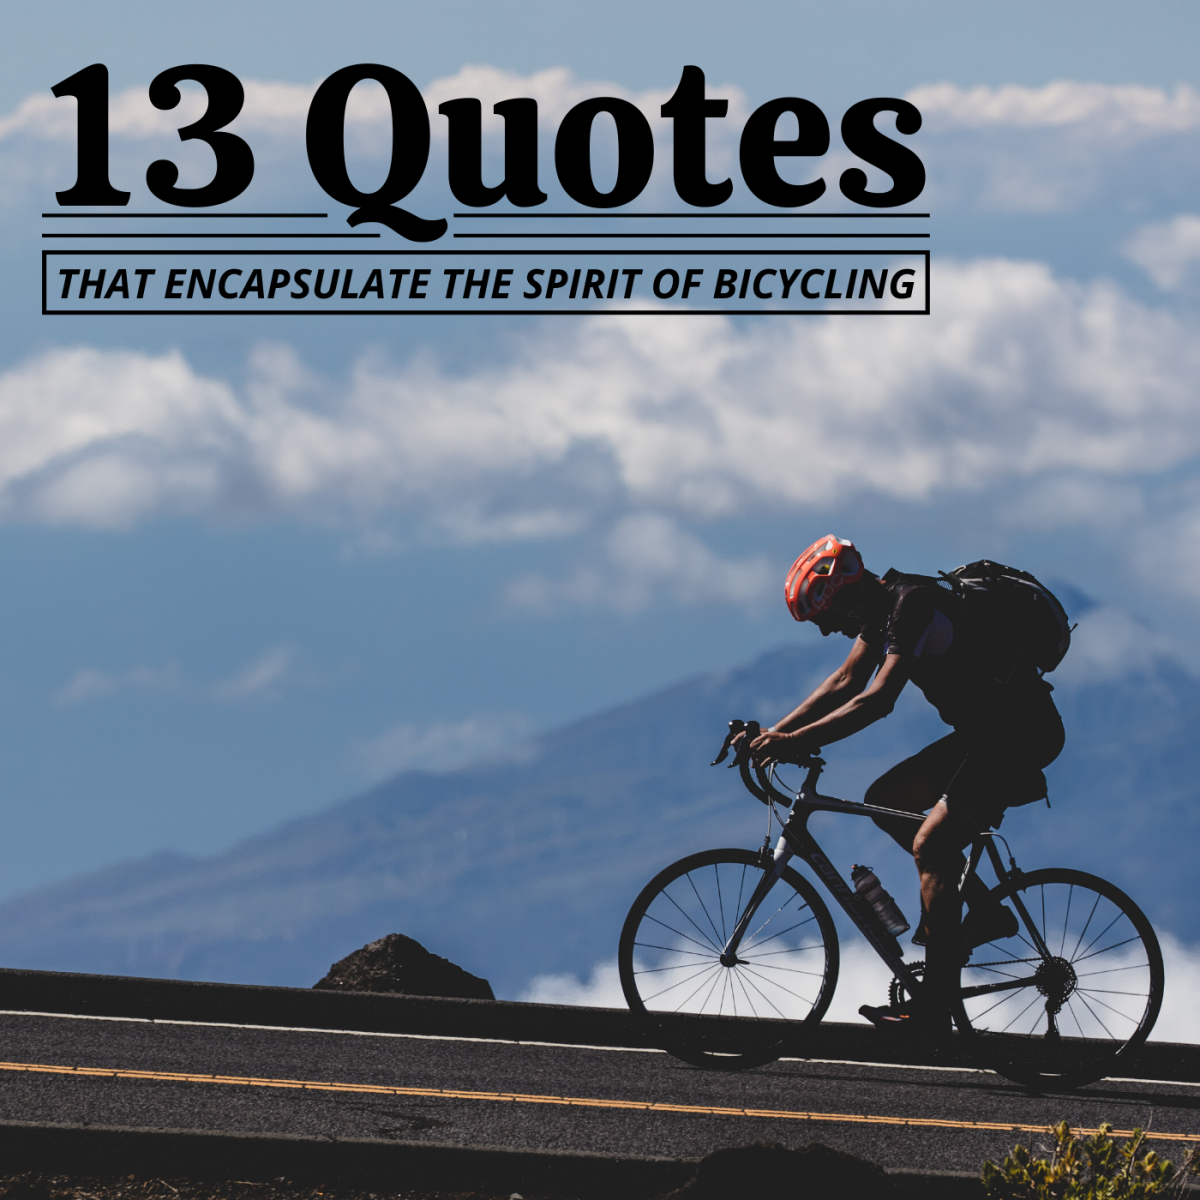 Almost everyone will ride a bike at some point in their life. These quotes capture the pure and universal bliss of cycling.